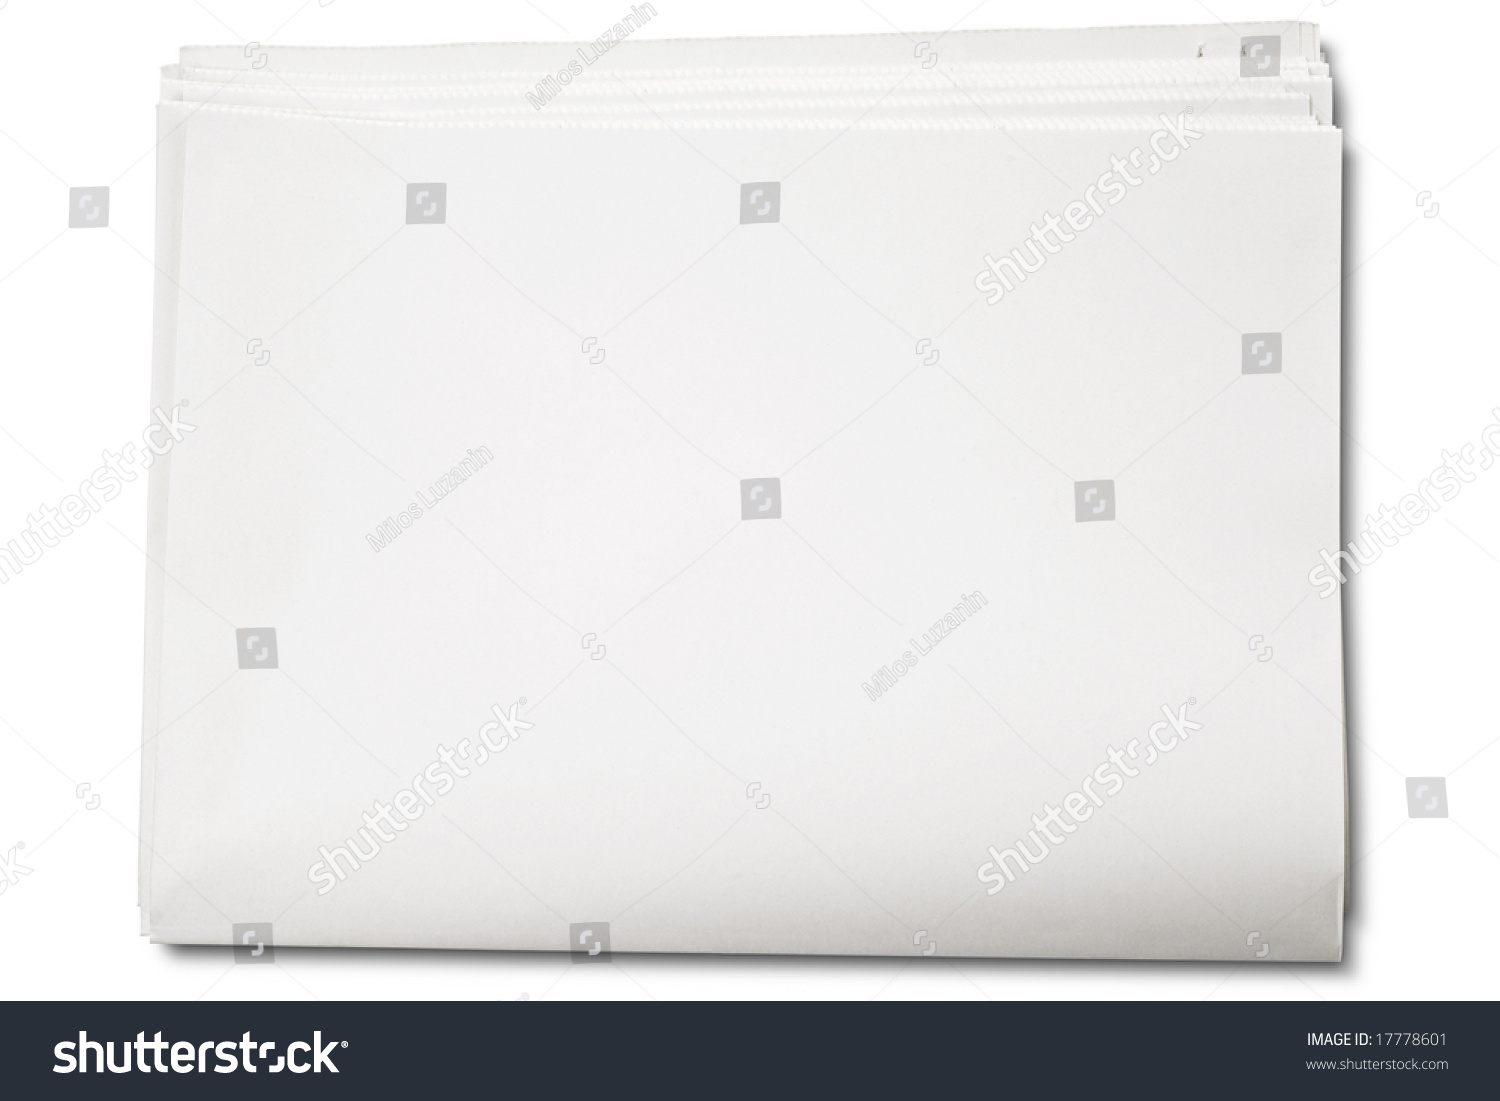 blank newspaper on white clipping path stock photo (edit now